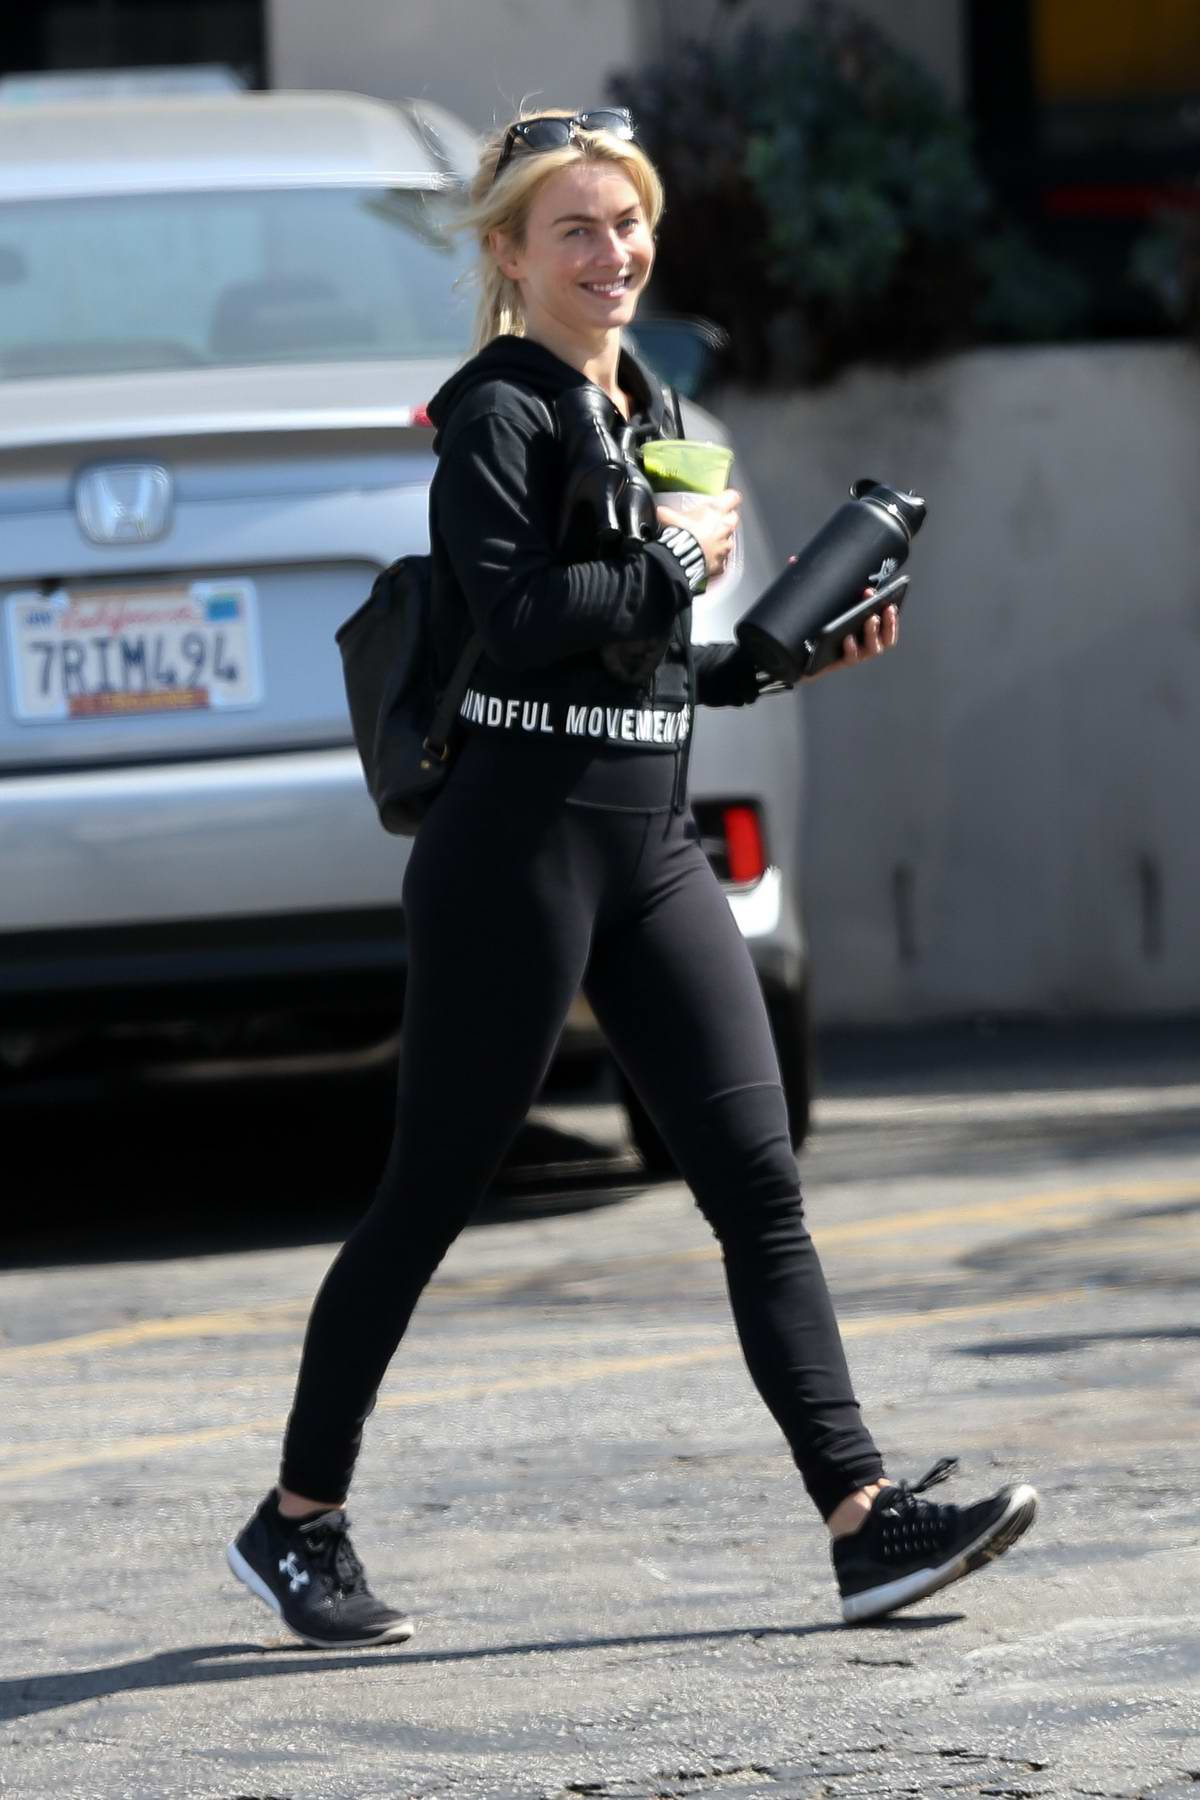 Julianne Hough sports all black as she heads to her dance class on Labor Day in Studio City, Los Angeles